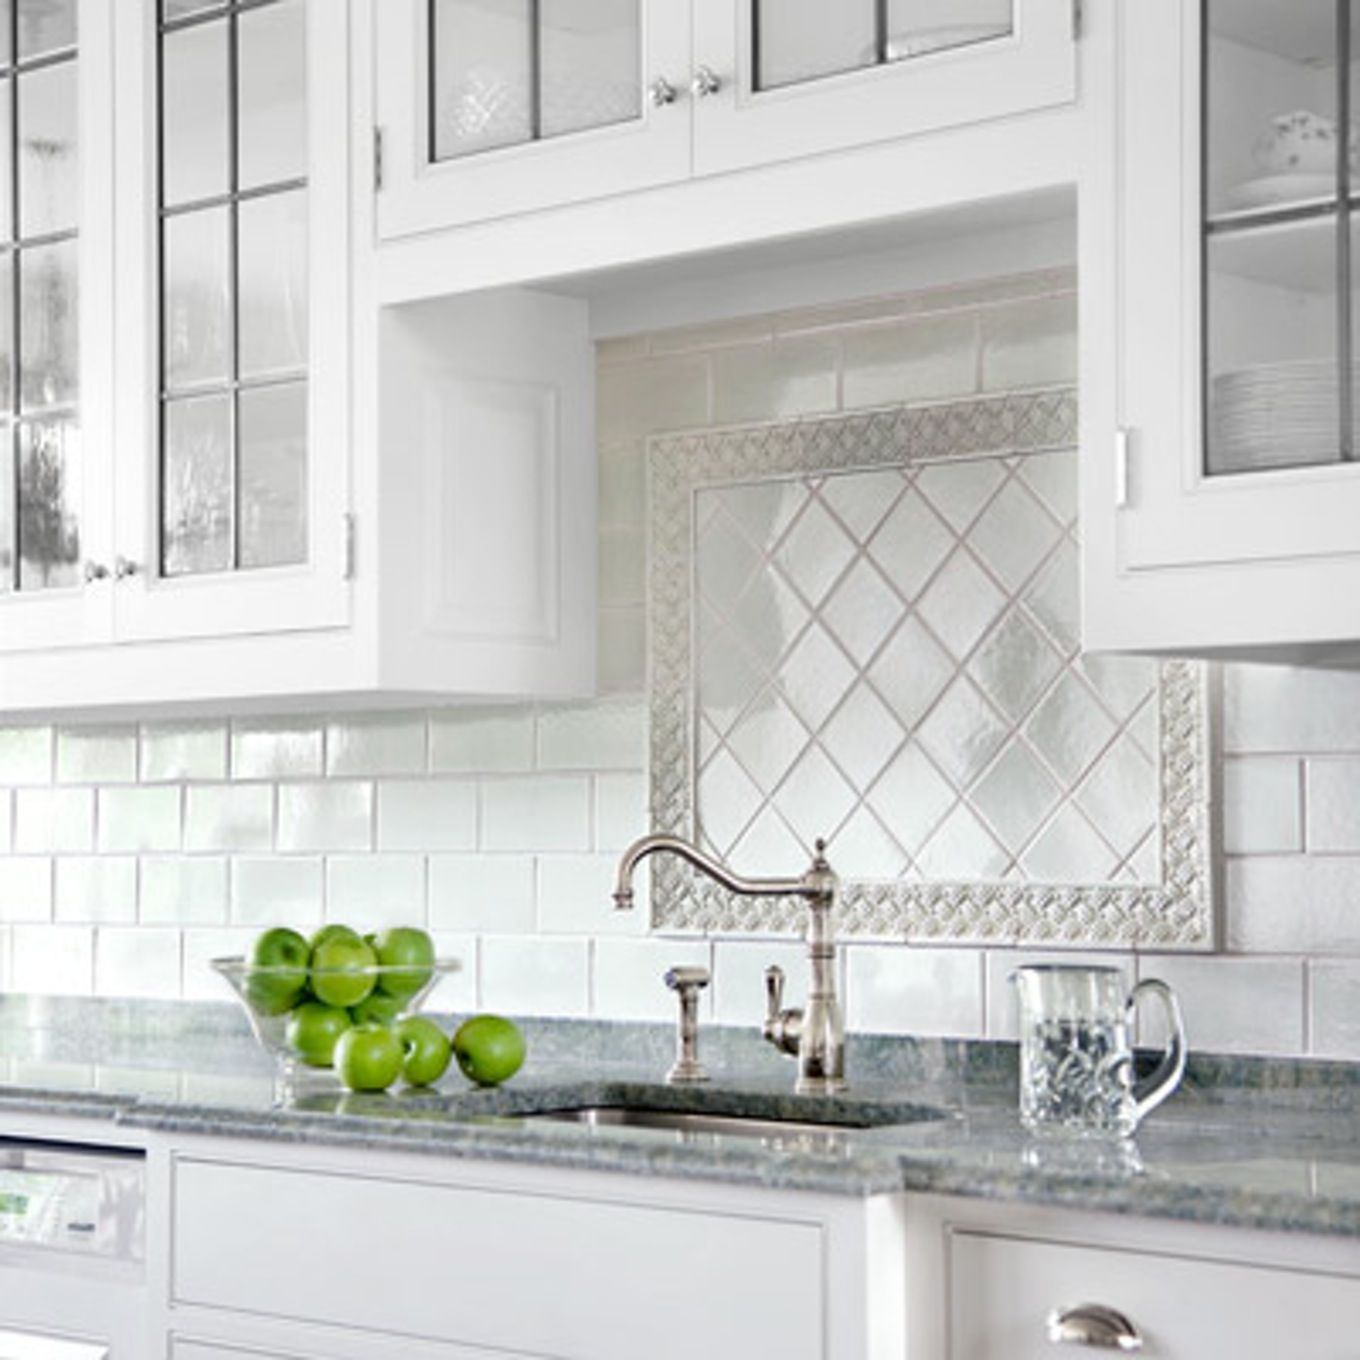 subway-tile-patterns-backsplash-wallpaper-backsplash ...